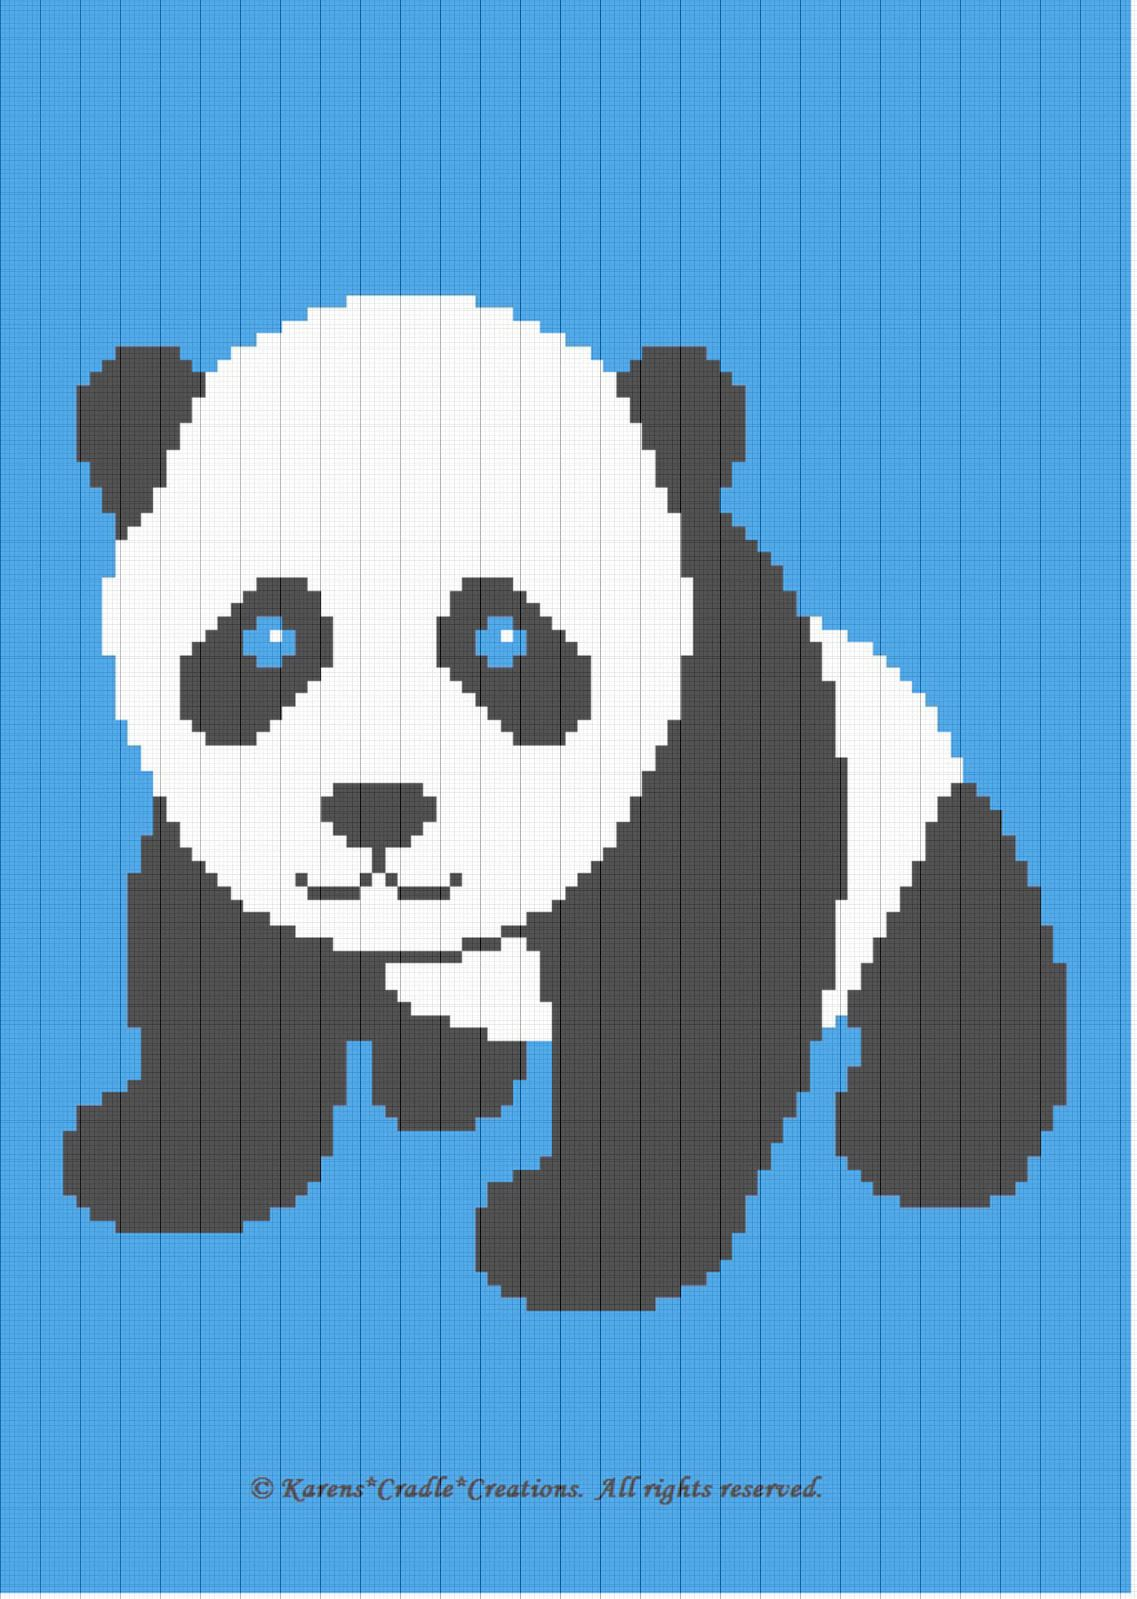 hight resolution of baby panda bear afghan pattern original graph pattern artwork karens cradle creations all rights reserved up for auction is a graph pattern that